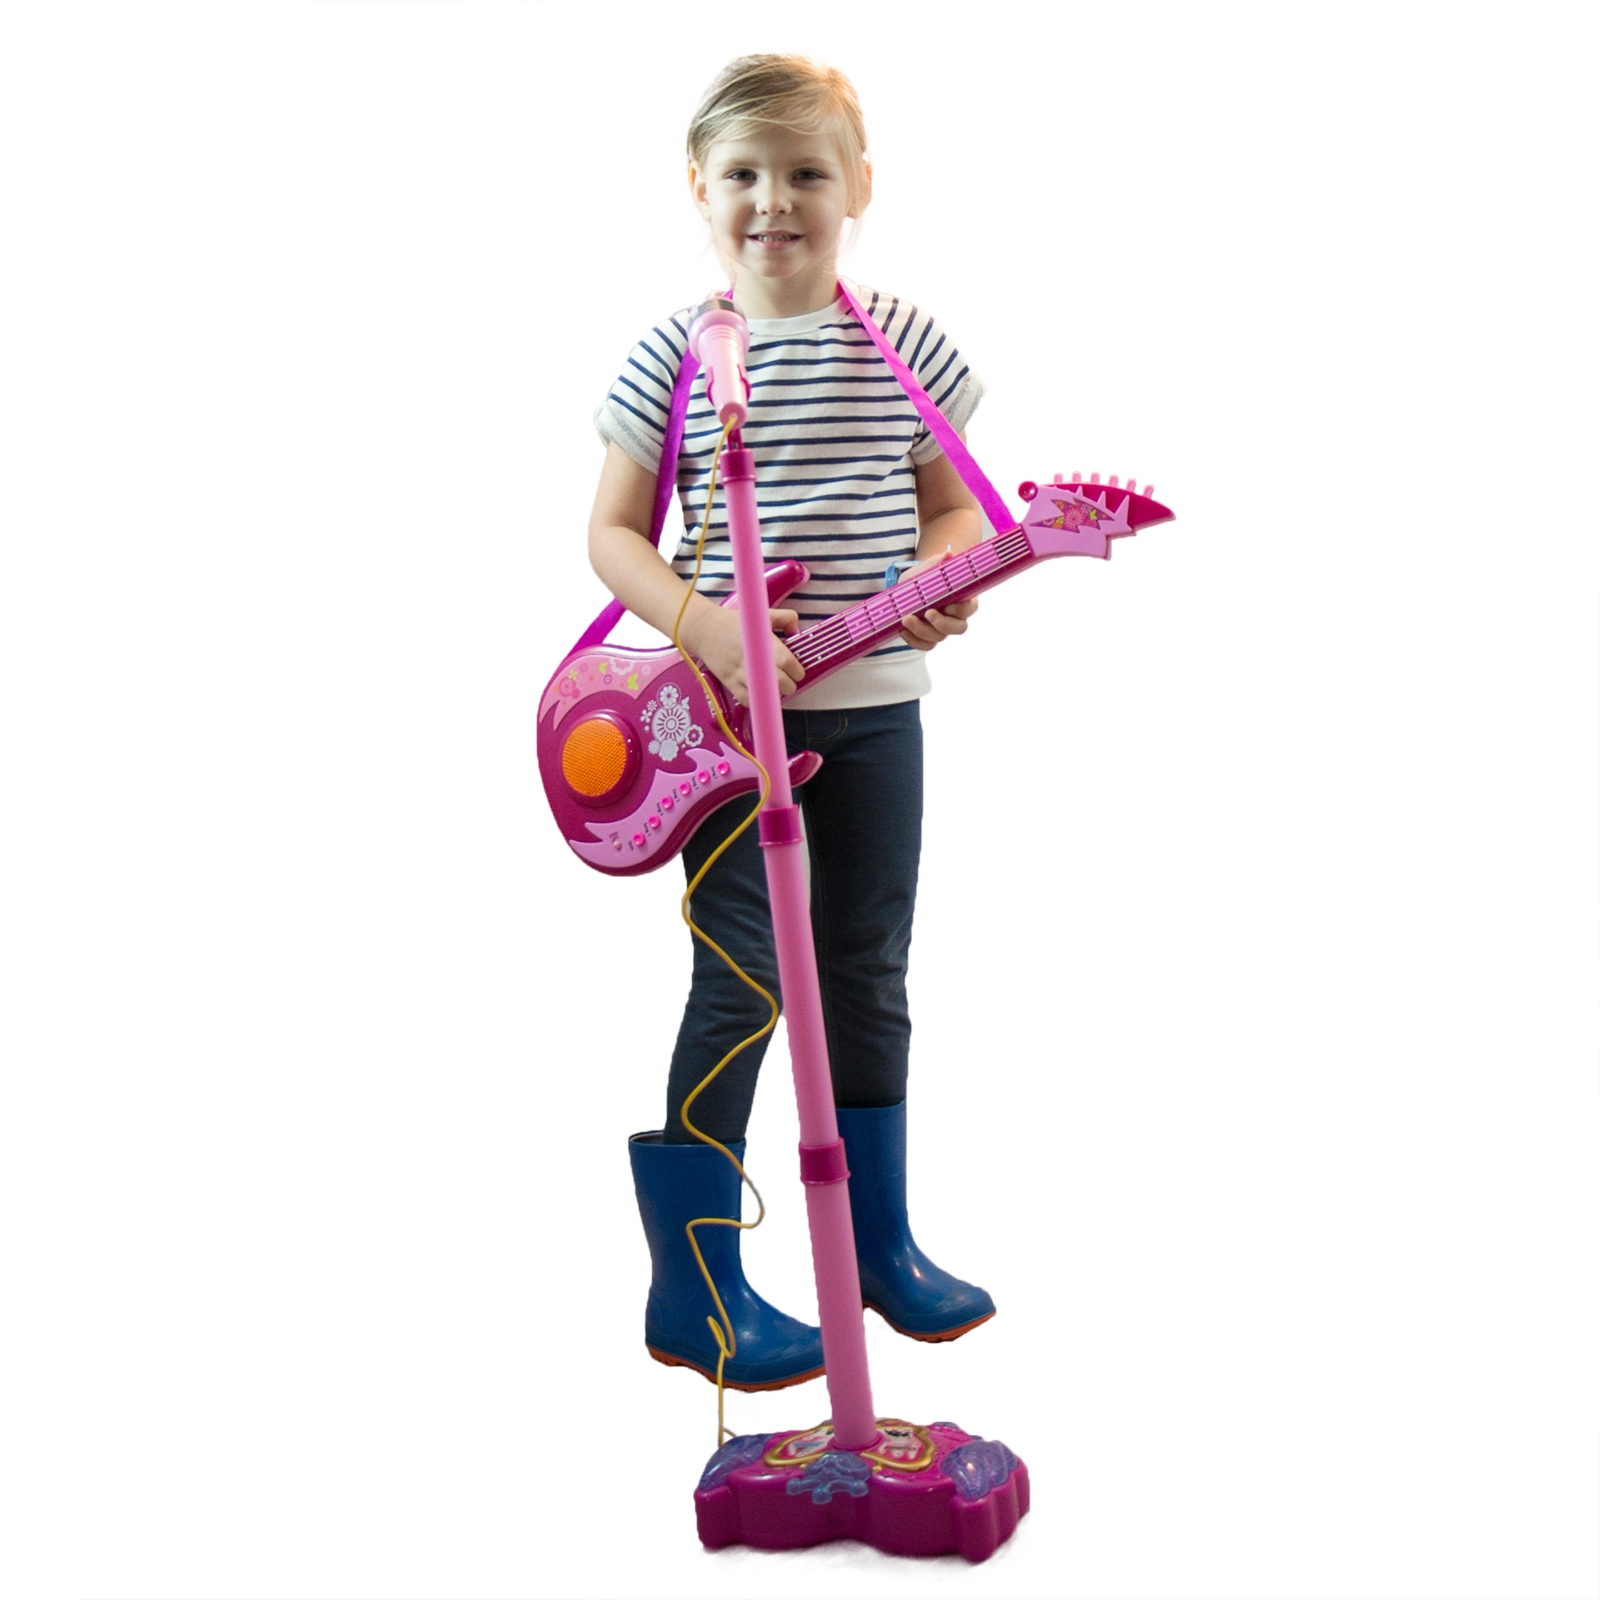 Kids Interactive Karaoke Singing Microphone Flashing Lights and Sound - Pink